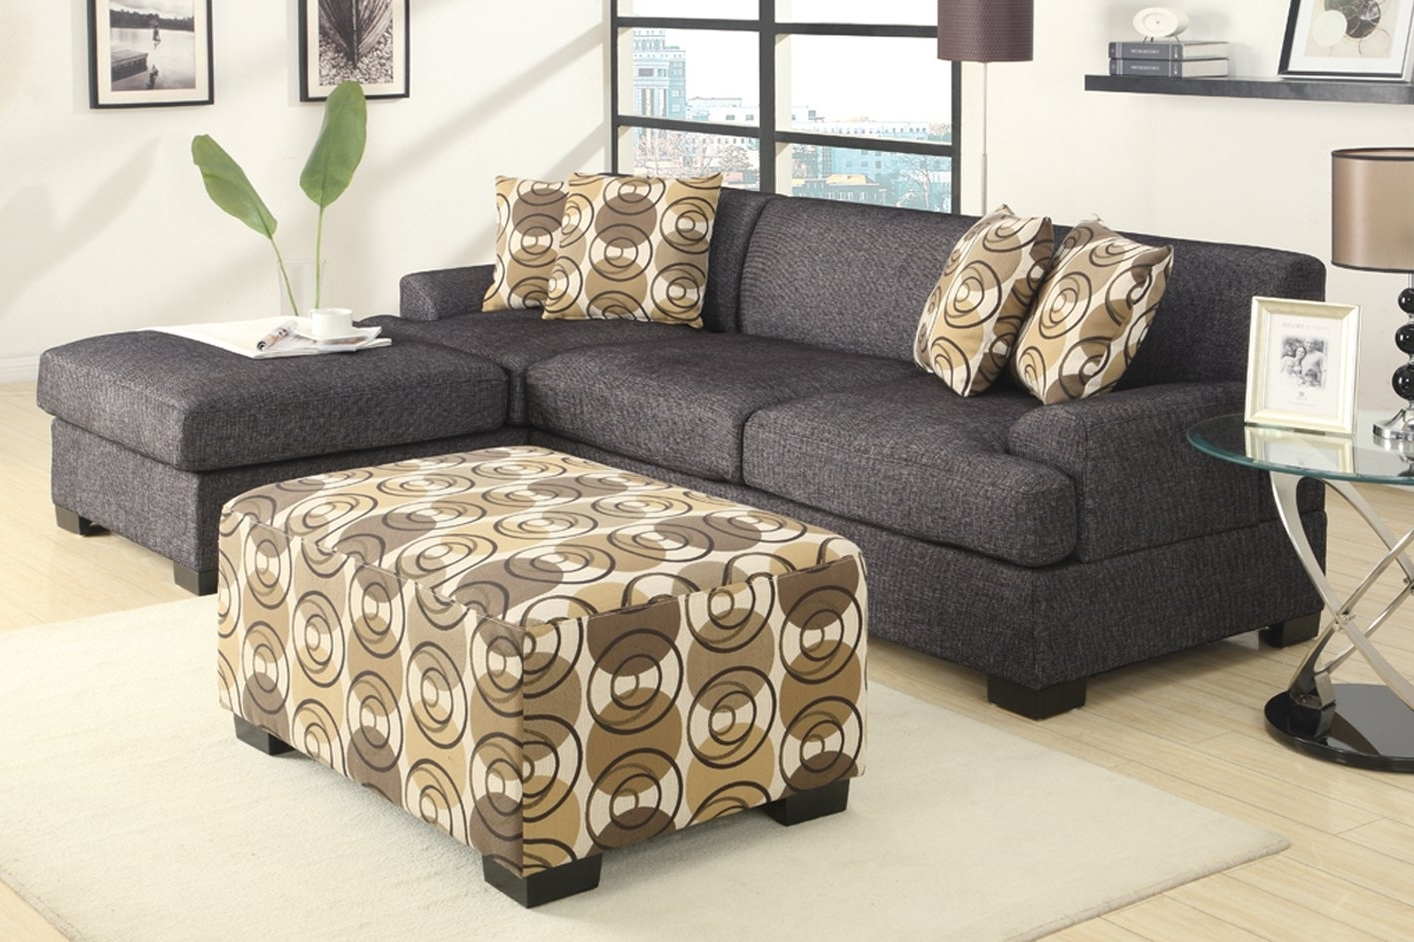 2018 Fabric Chaise Lounges Pertaining To Grey Fabric Chaise Lounge – Steal A Sofa Furniture Outlet Los (View 9 of 15)